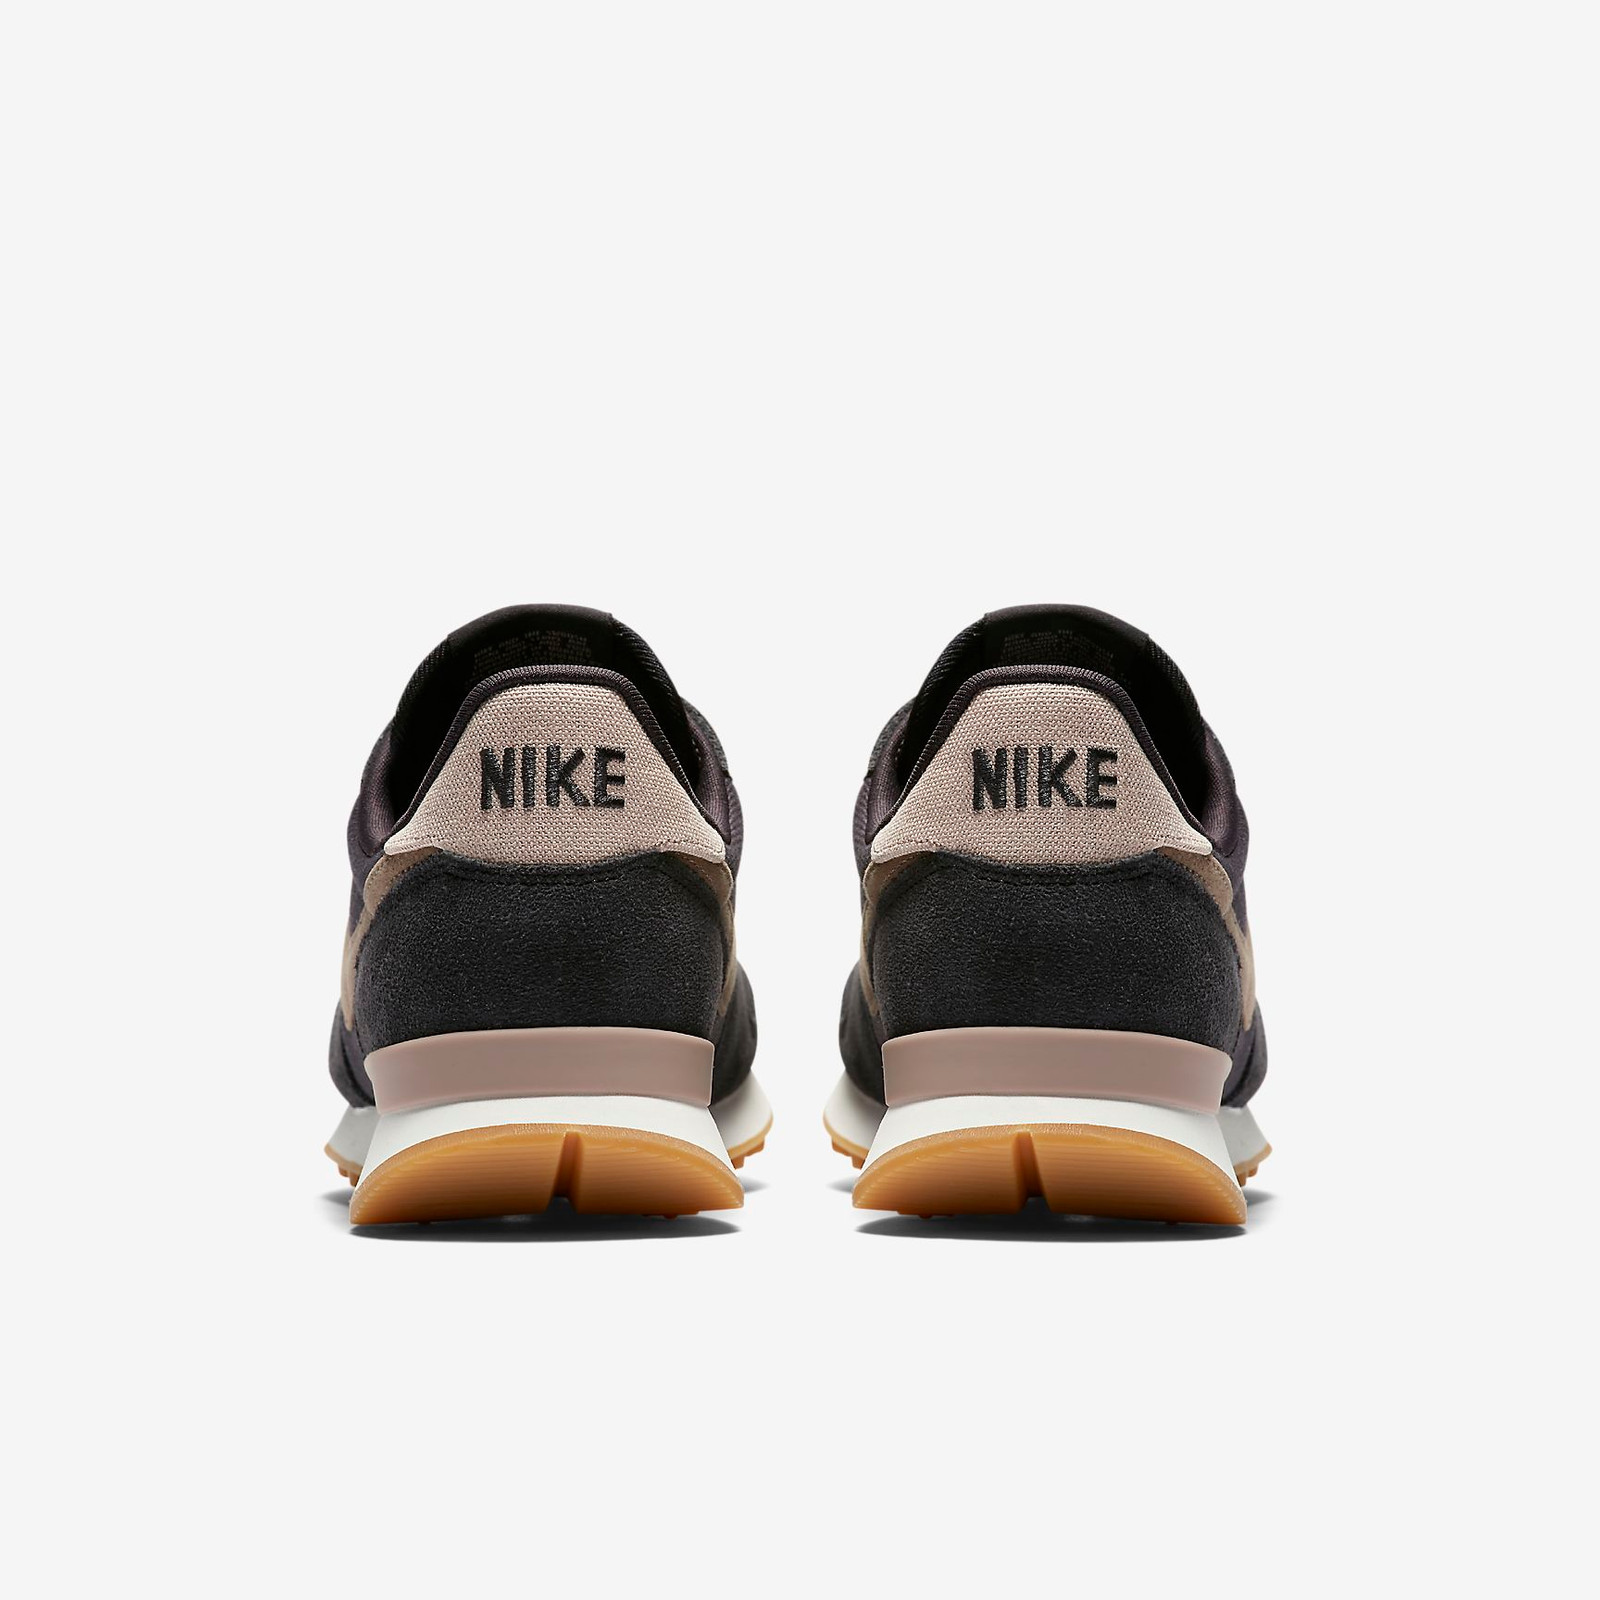 free shipping f6857 bfecf NIKE Wmns Internationalist - Oil Grey   Mink Brown - Summit White